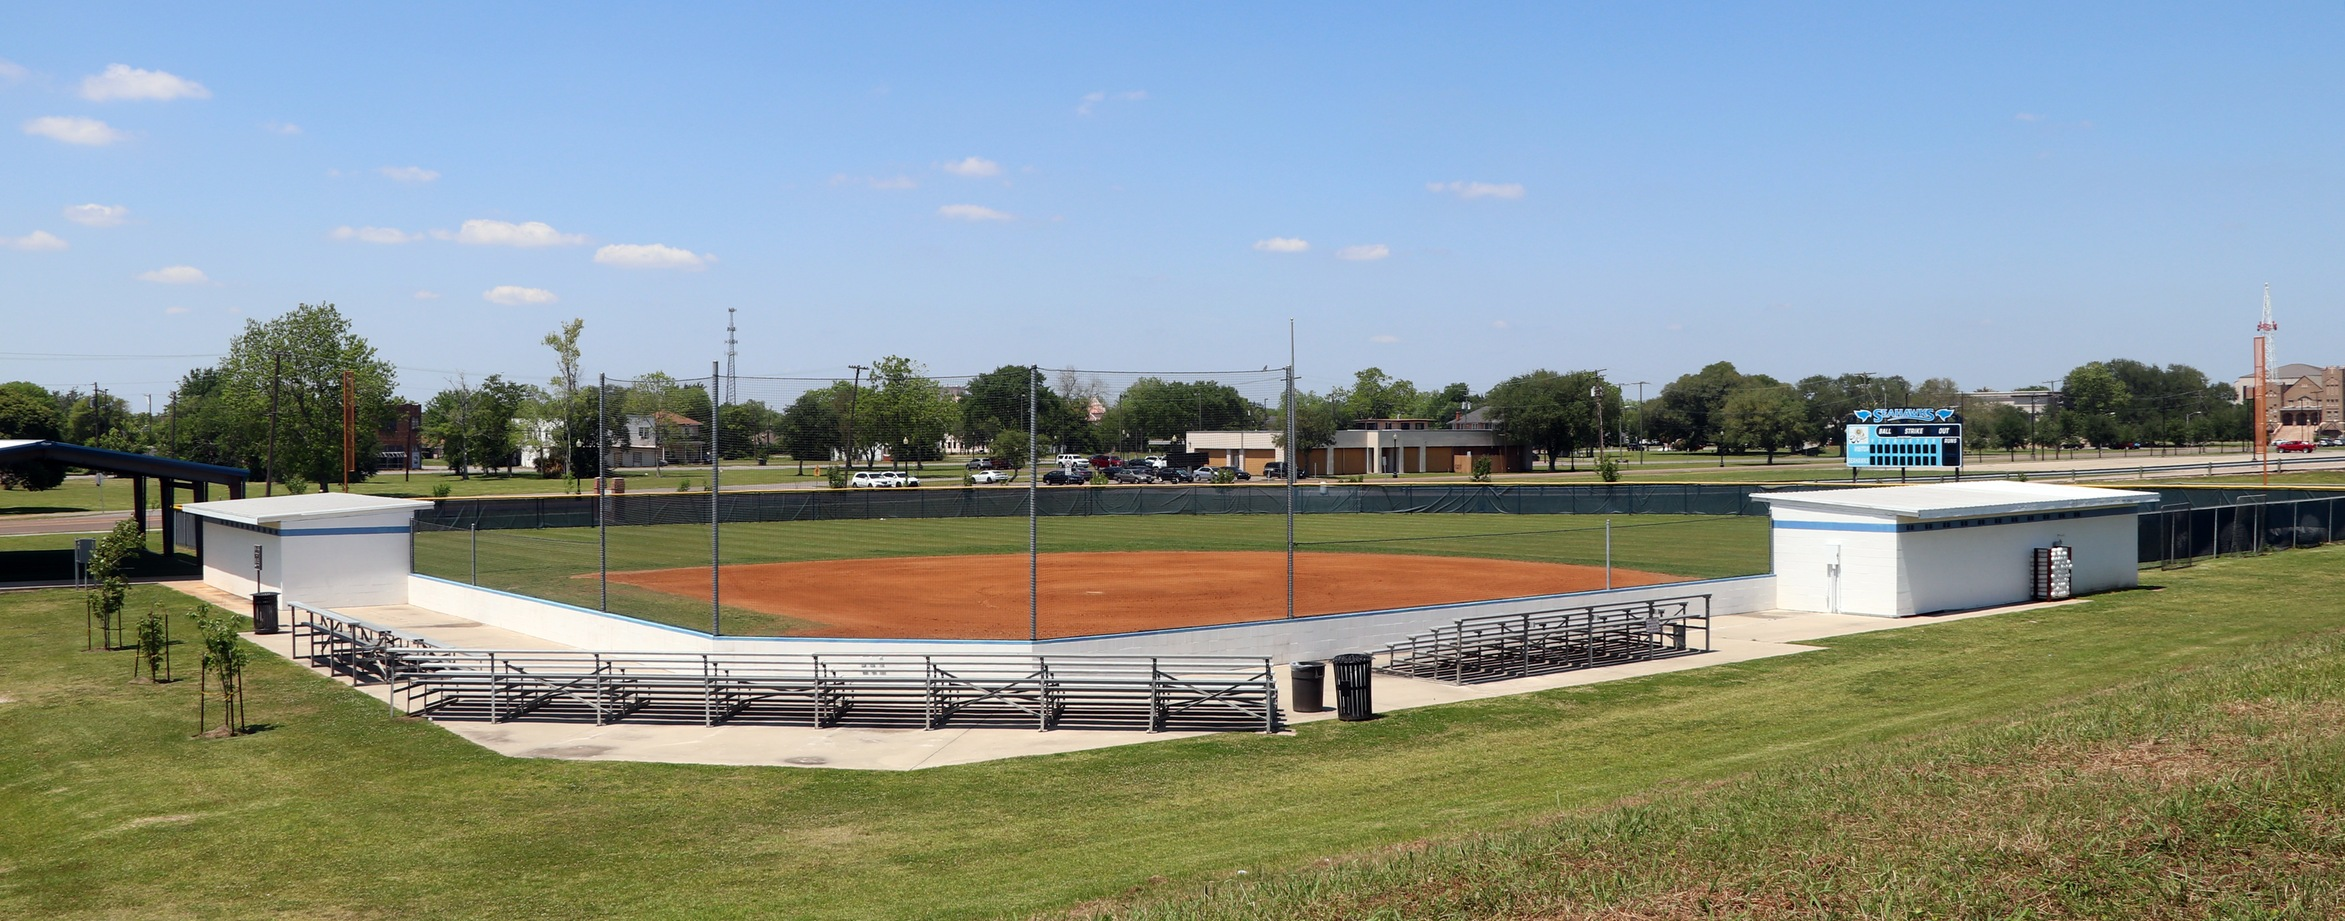 Martin Field is the home of the Lamar State College Port Arthur Seahawks softball team.